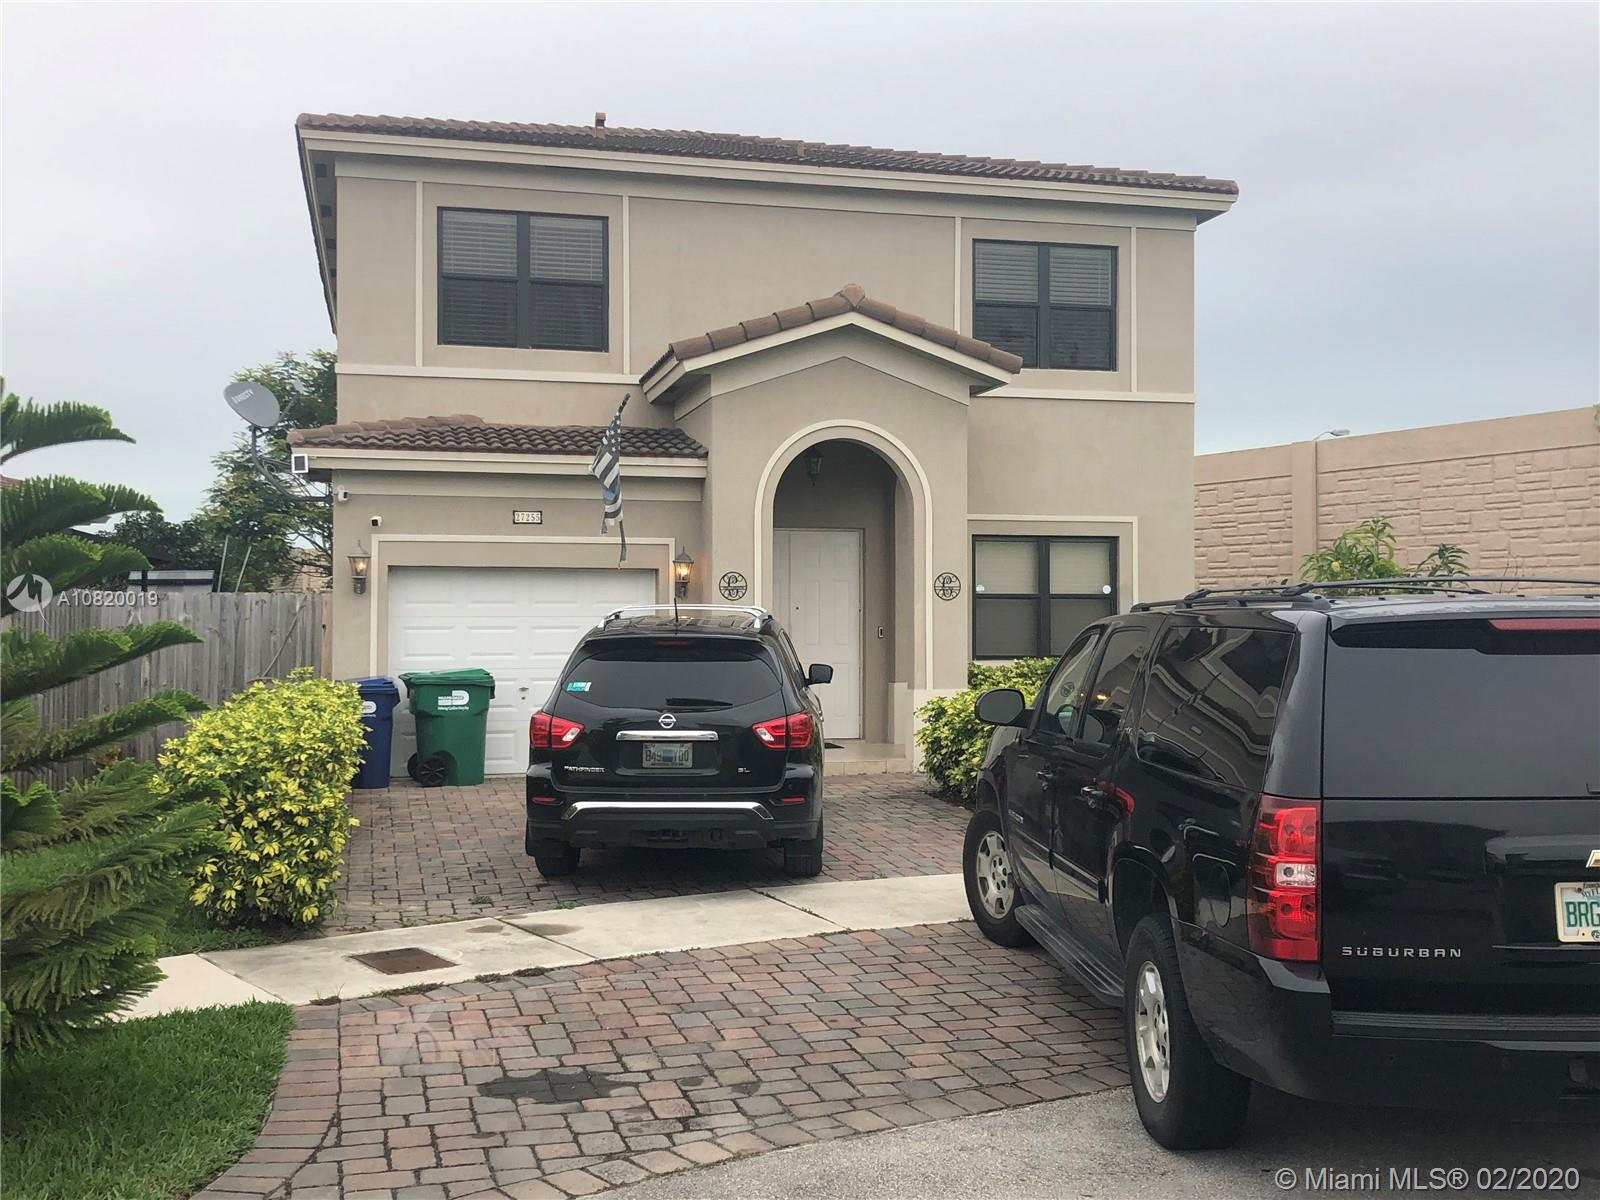 27255 SW 135 avenue, Homestead, FL 33032 - Homestead, FL real estate listing